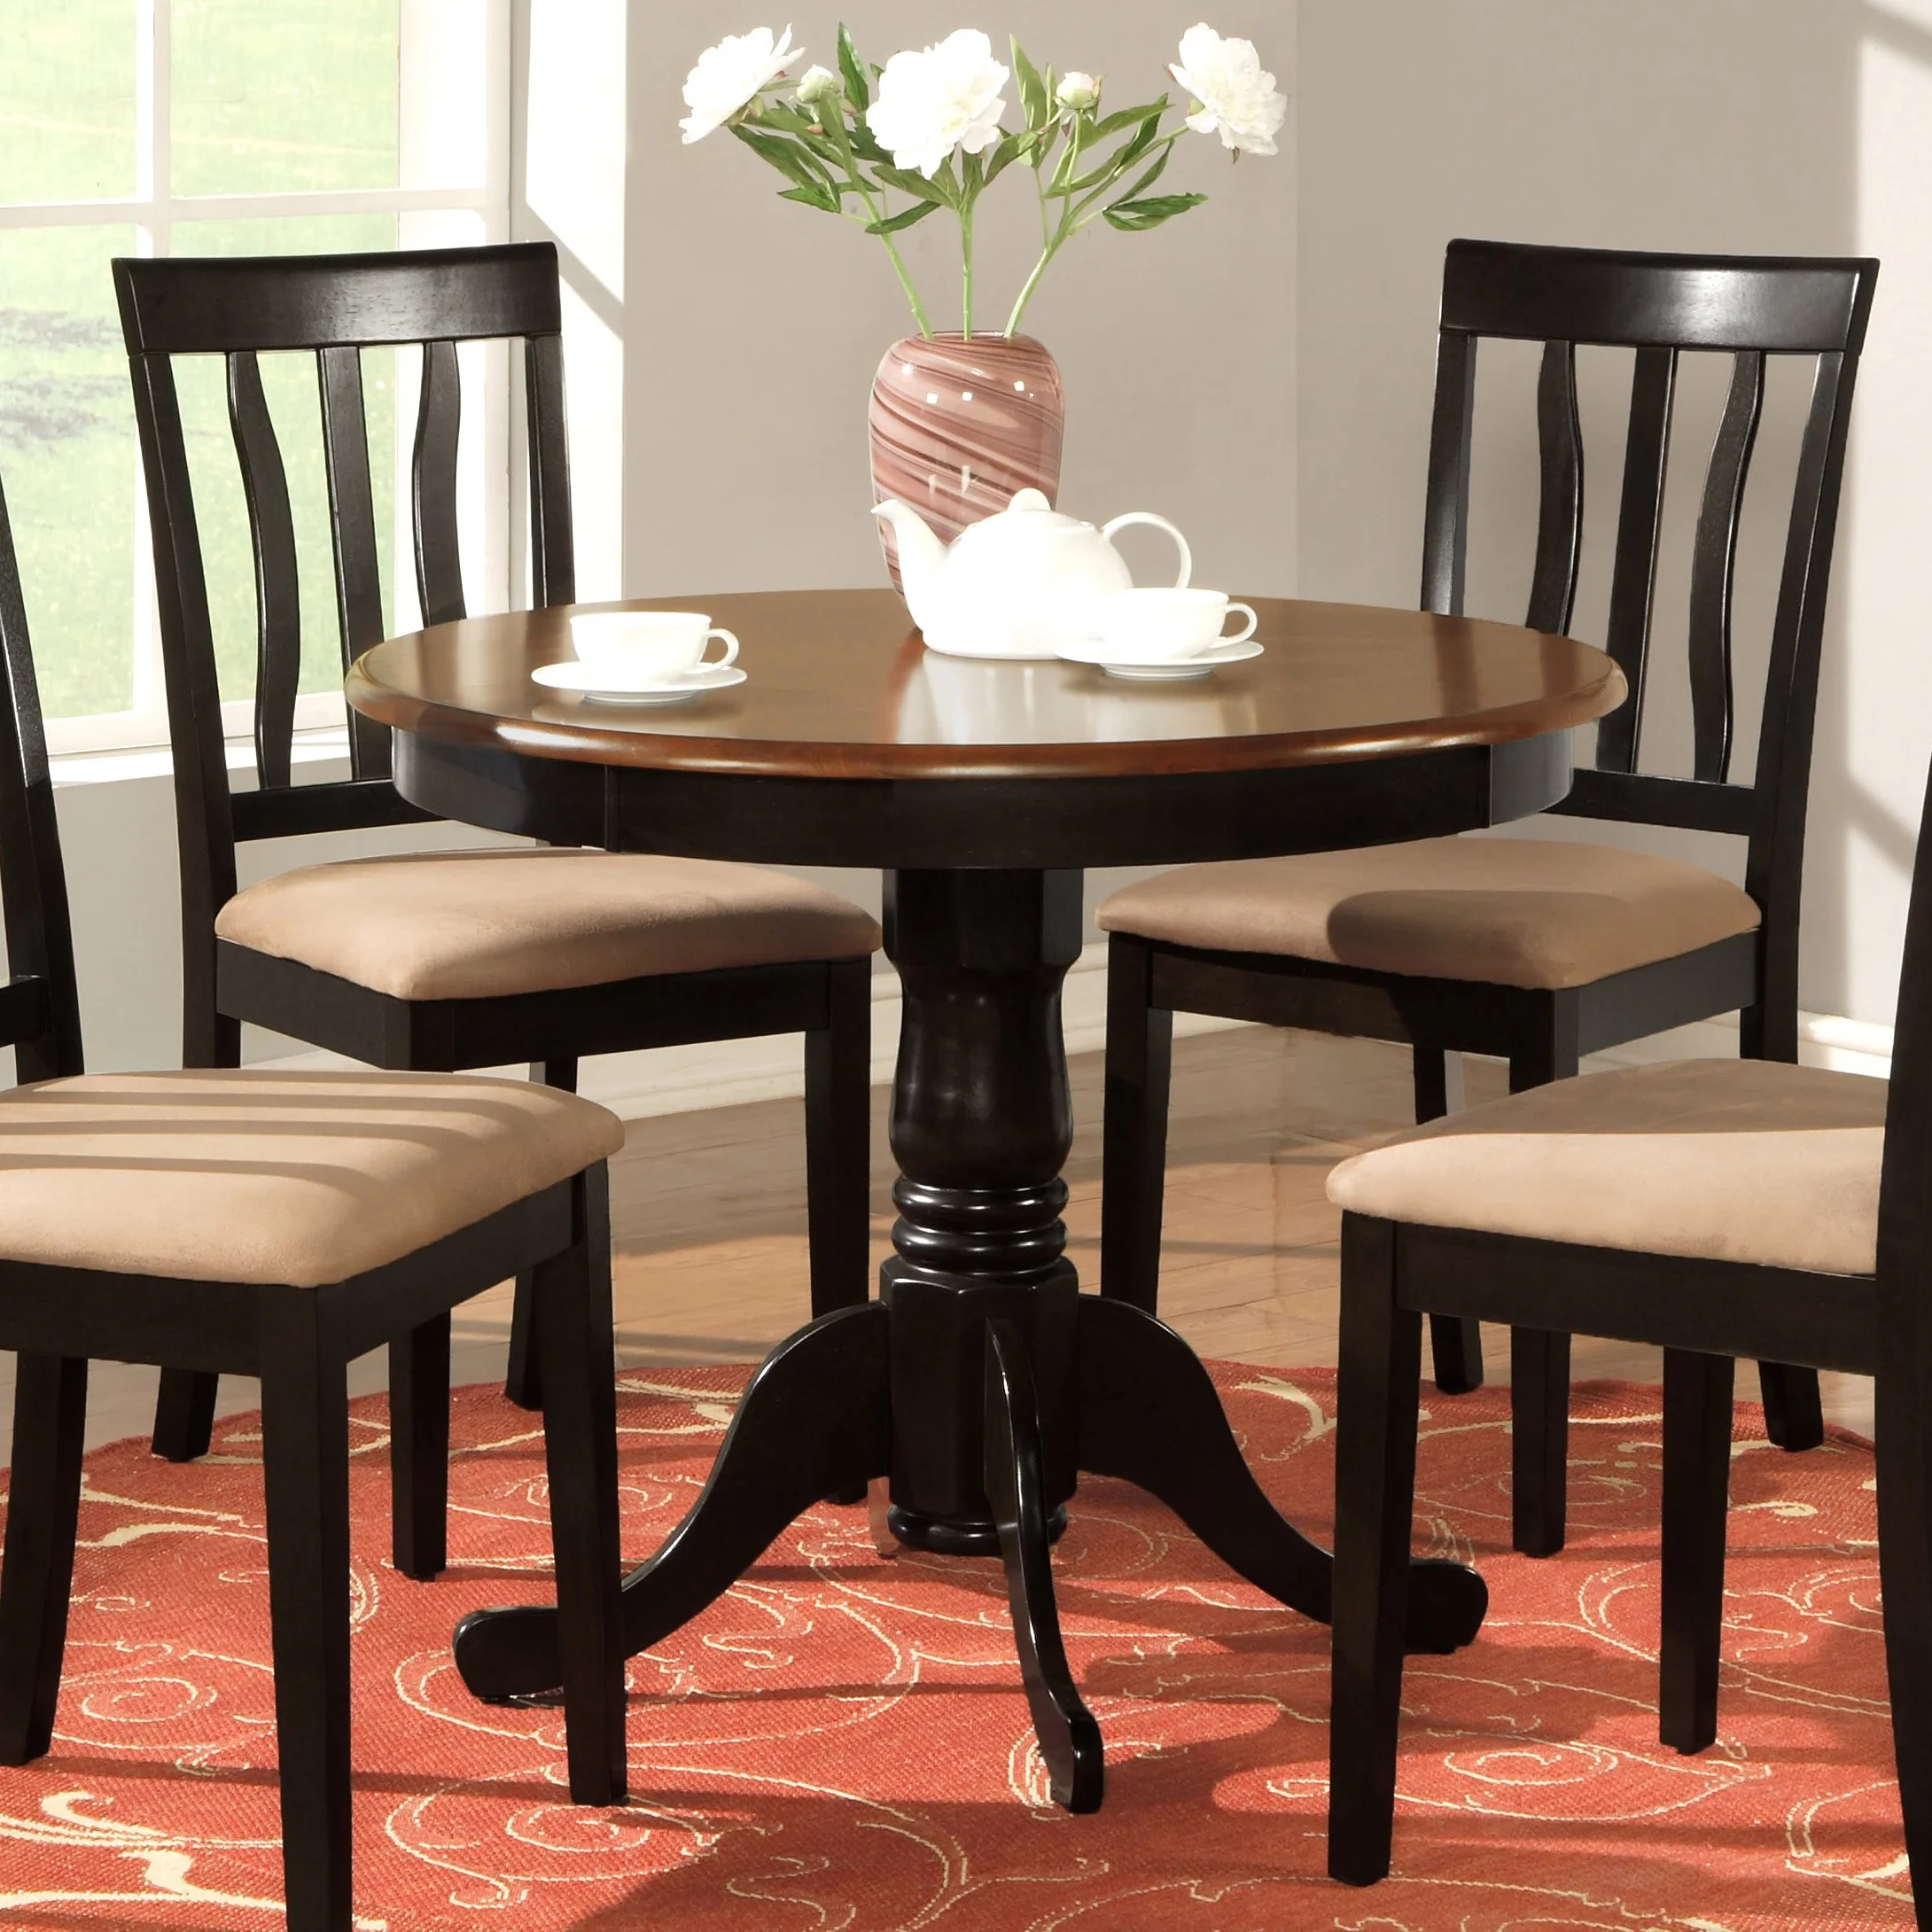 round kitchen dining tables c a~ round kitchen tables QUICK VIEW Caledonia Dining Table